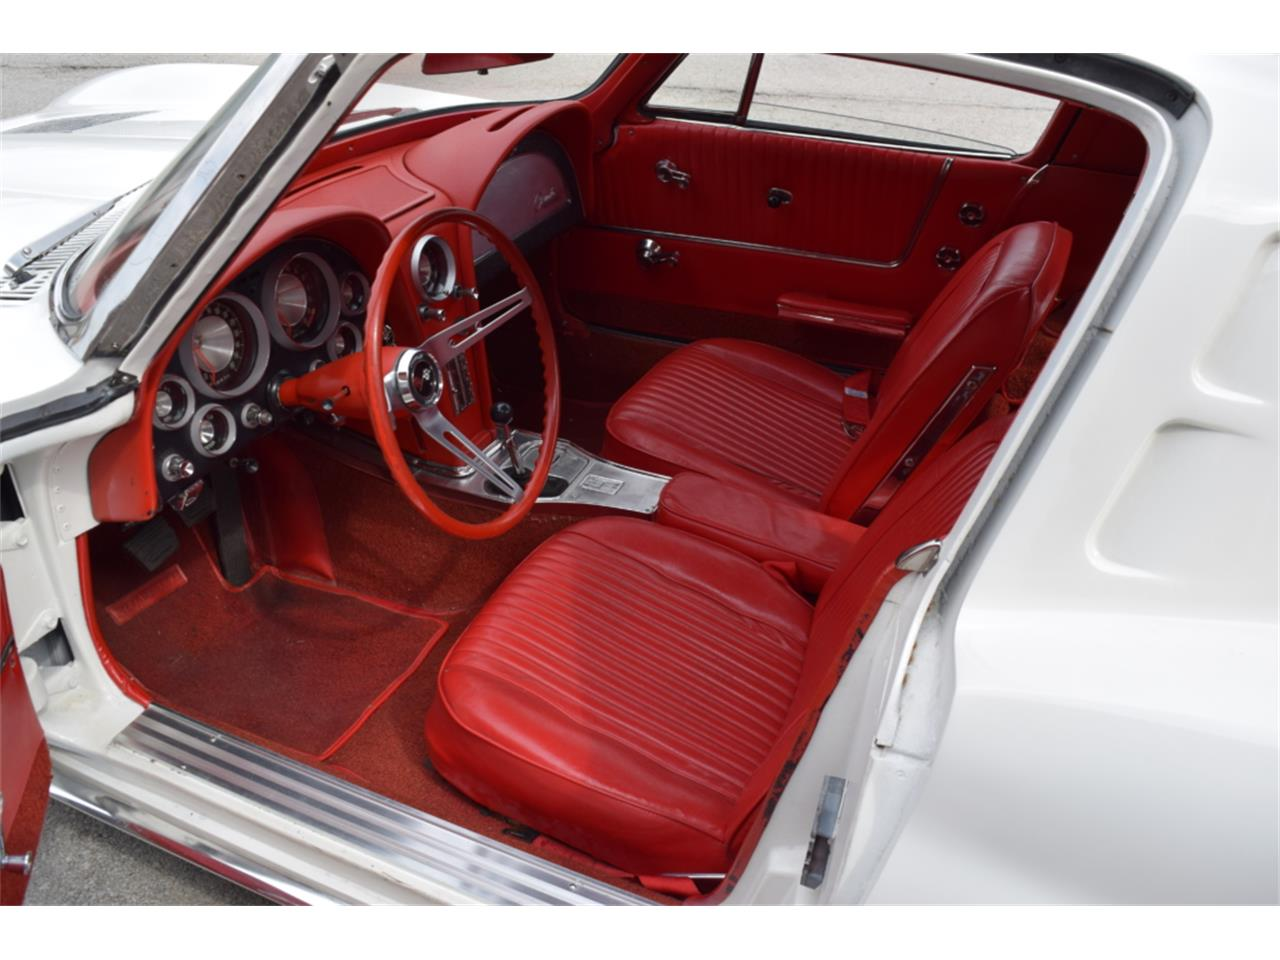 1963 Chevrolet Corvette for sale in N. Kansas City, MO – photo 18